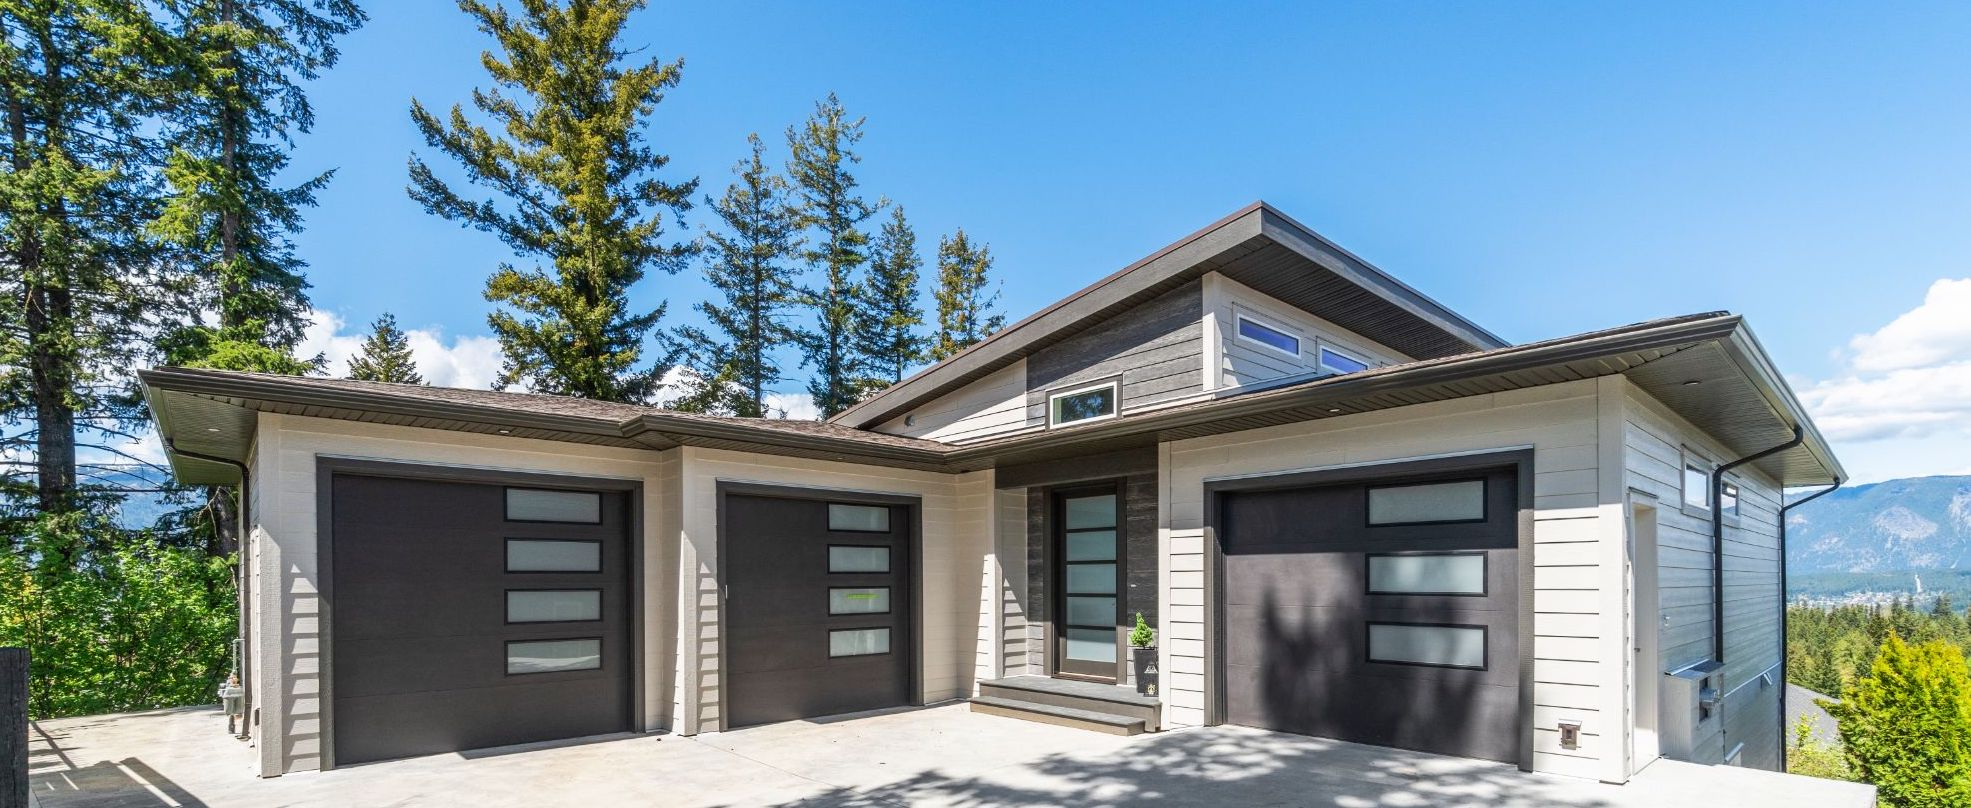 1411 9th ave for sale